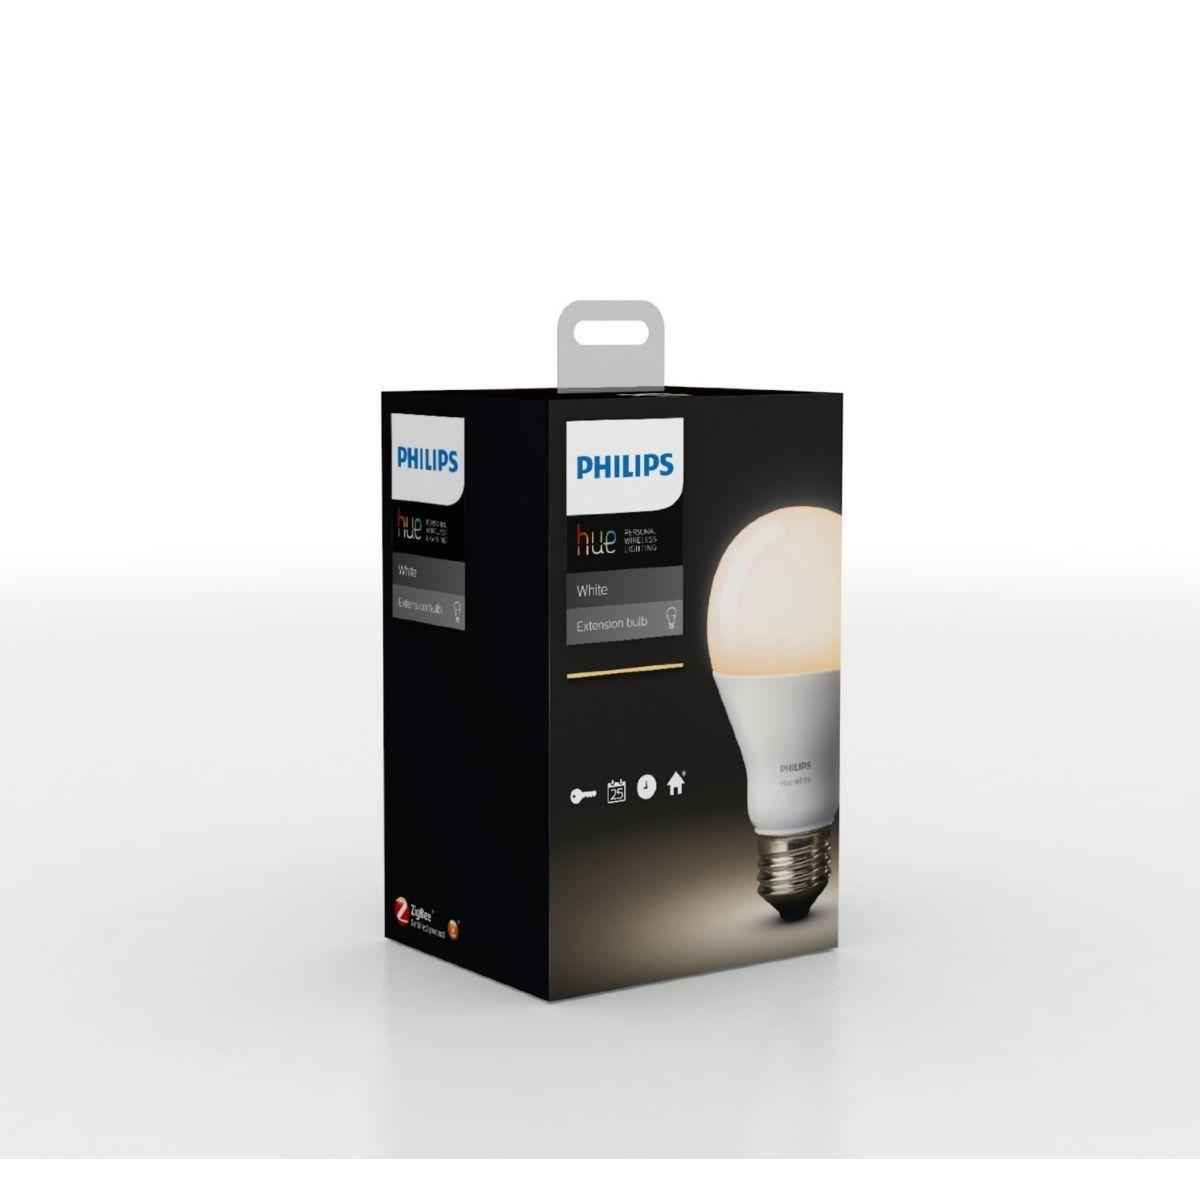 Ampoule connectable philips e27 hue white (photo)